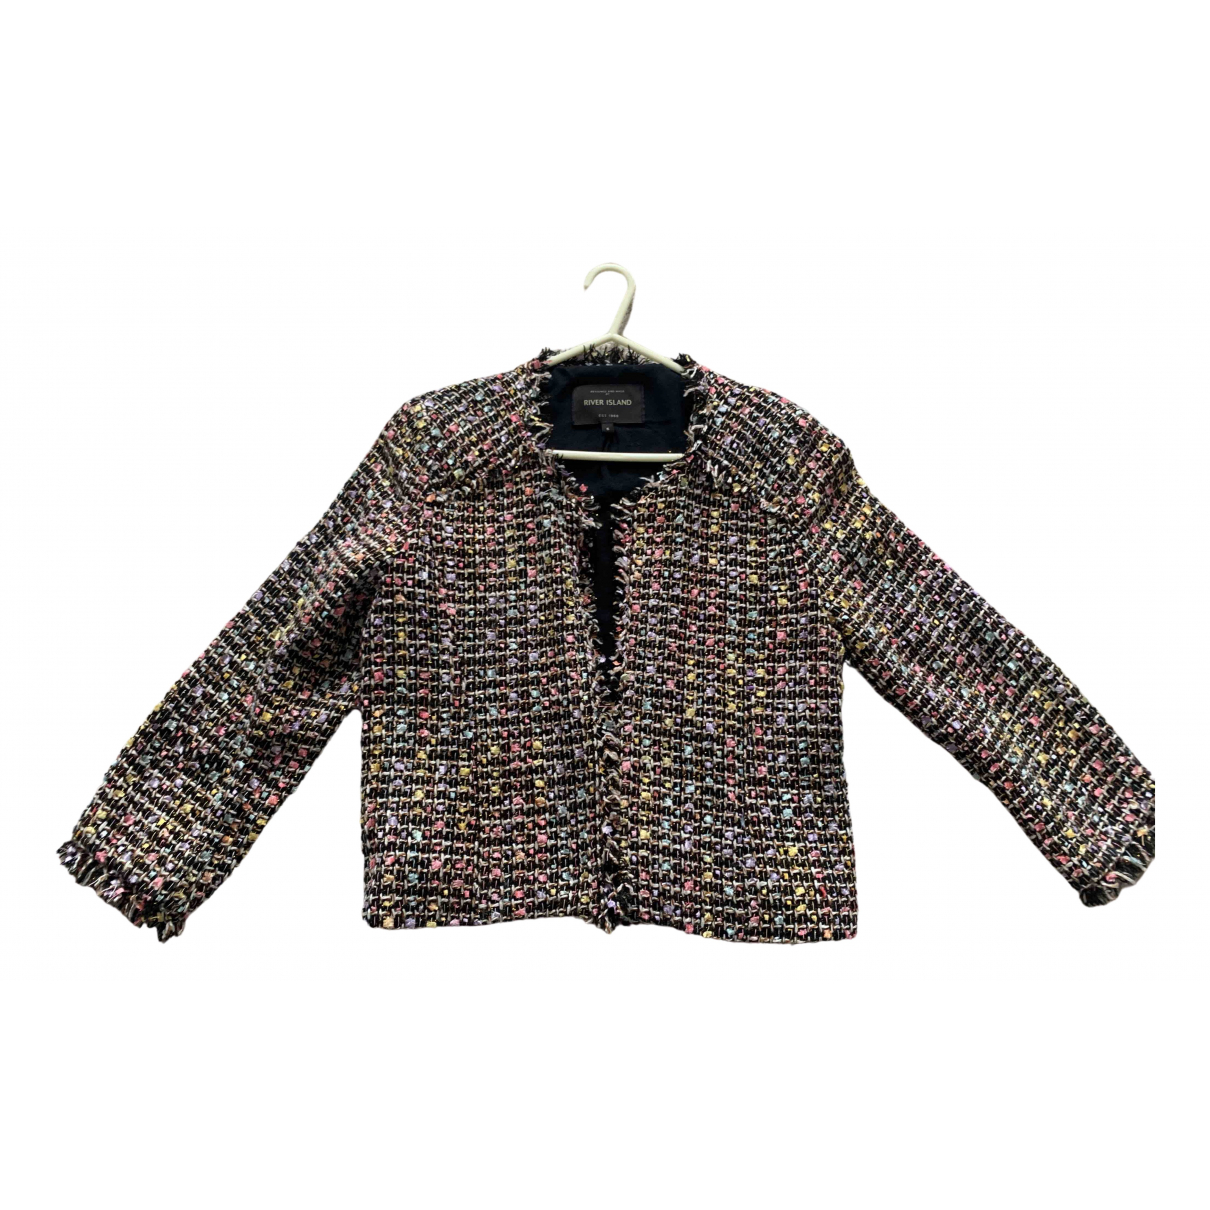 River Island \N Multicolour Cotton jacket for Women 6 UK